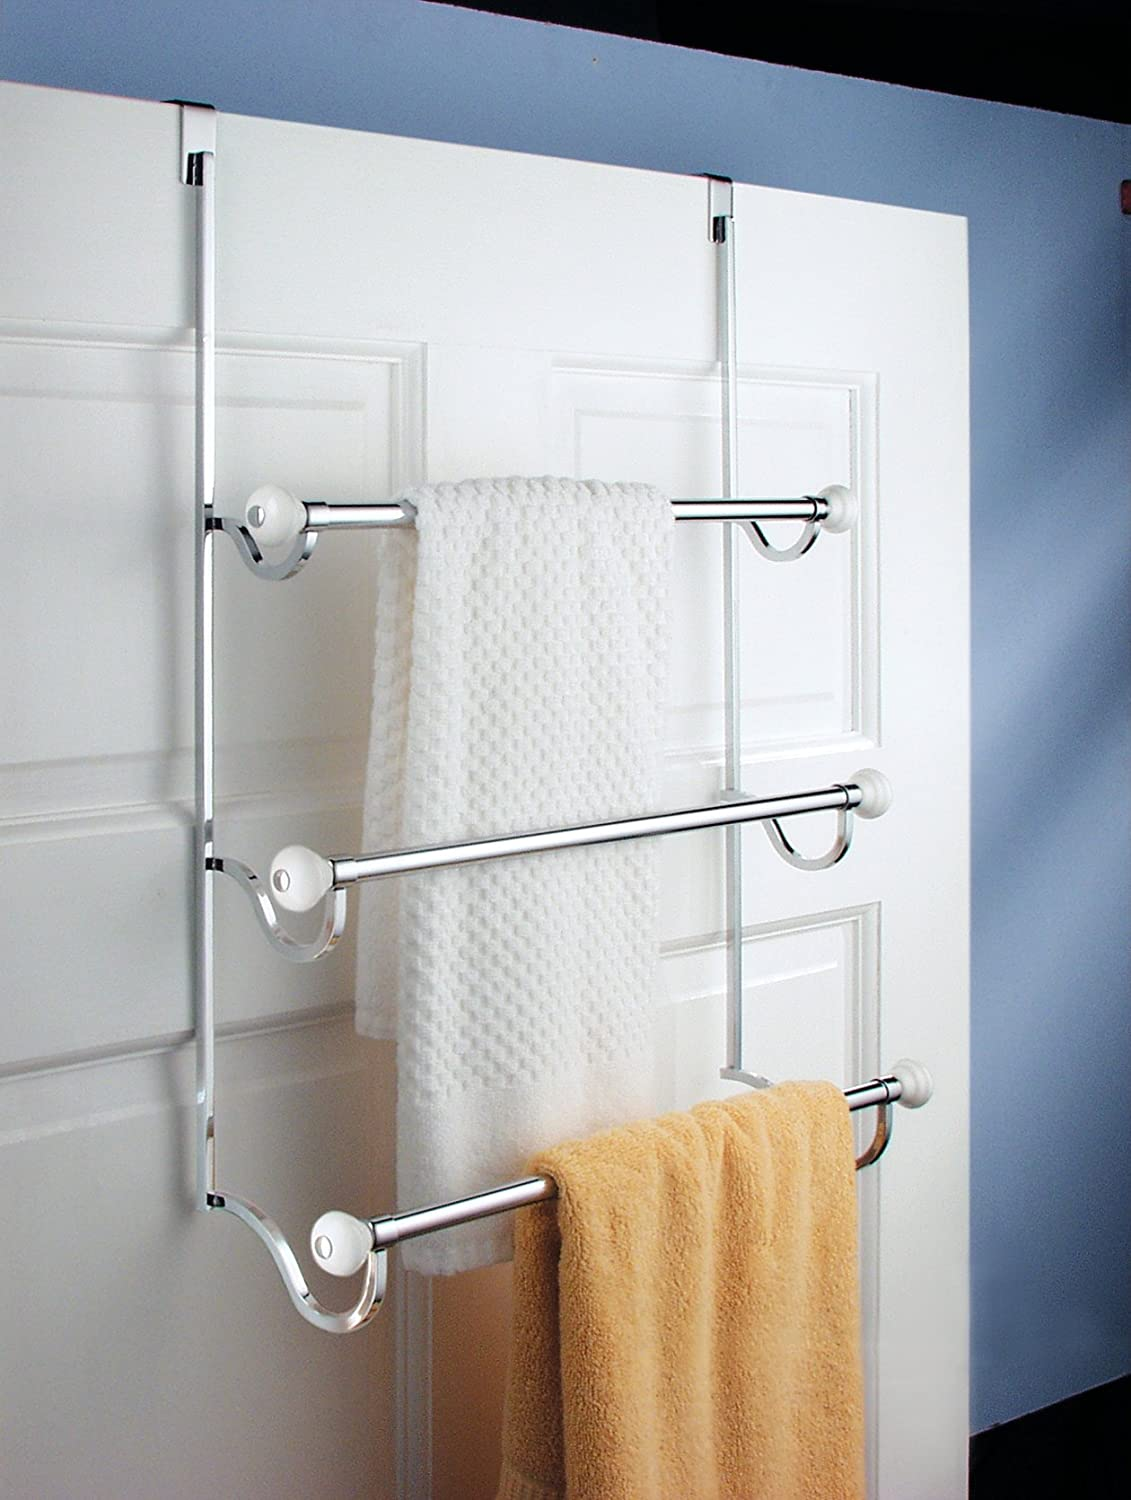 interdesign york over the shower door 3 bar towel rack white and chrome new ebay. Black Bedroom Furniture Sets. Home Design Ideas